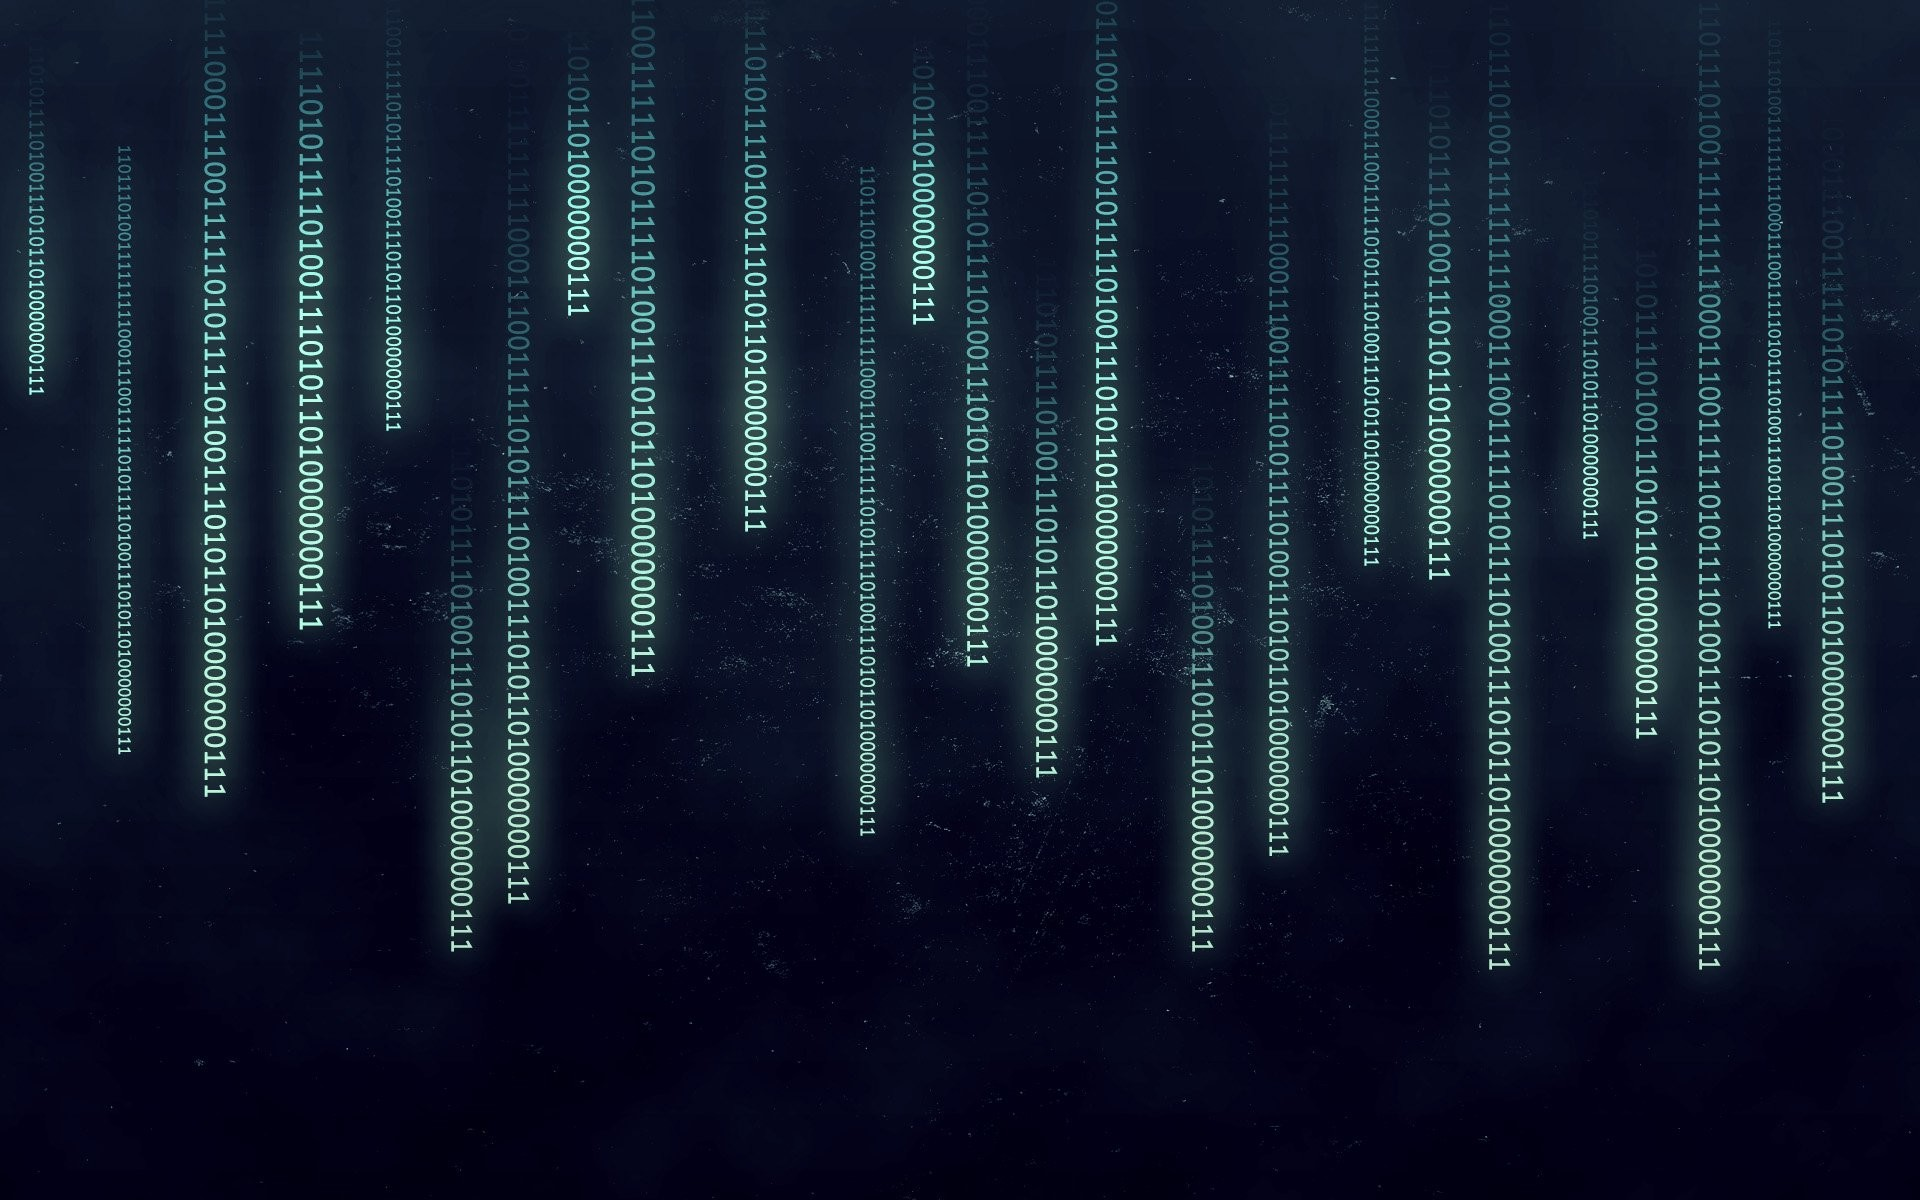 Pictures Collection for Mobile Computer Science Wallpaper